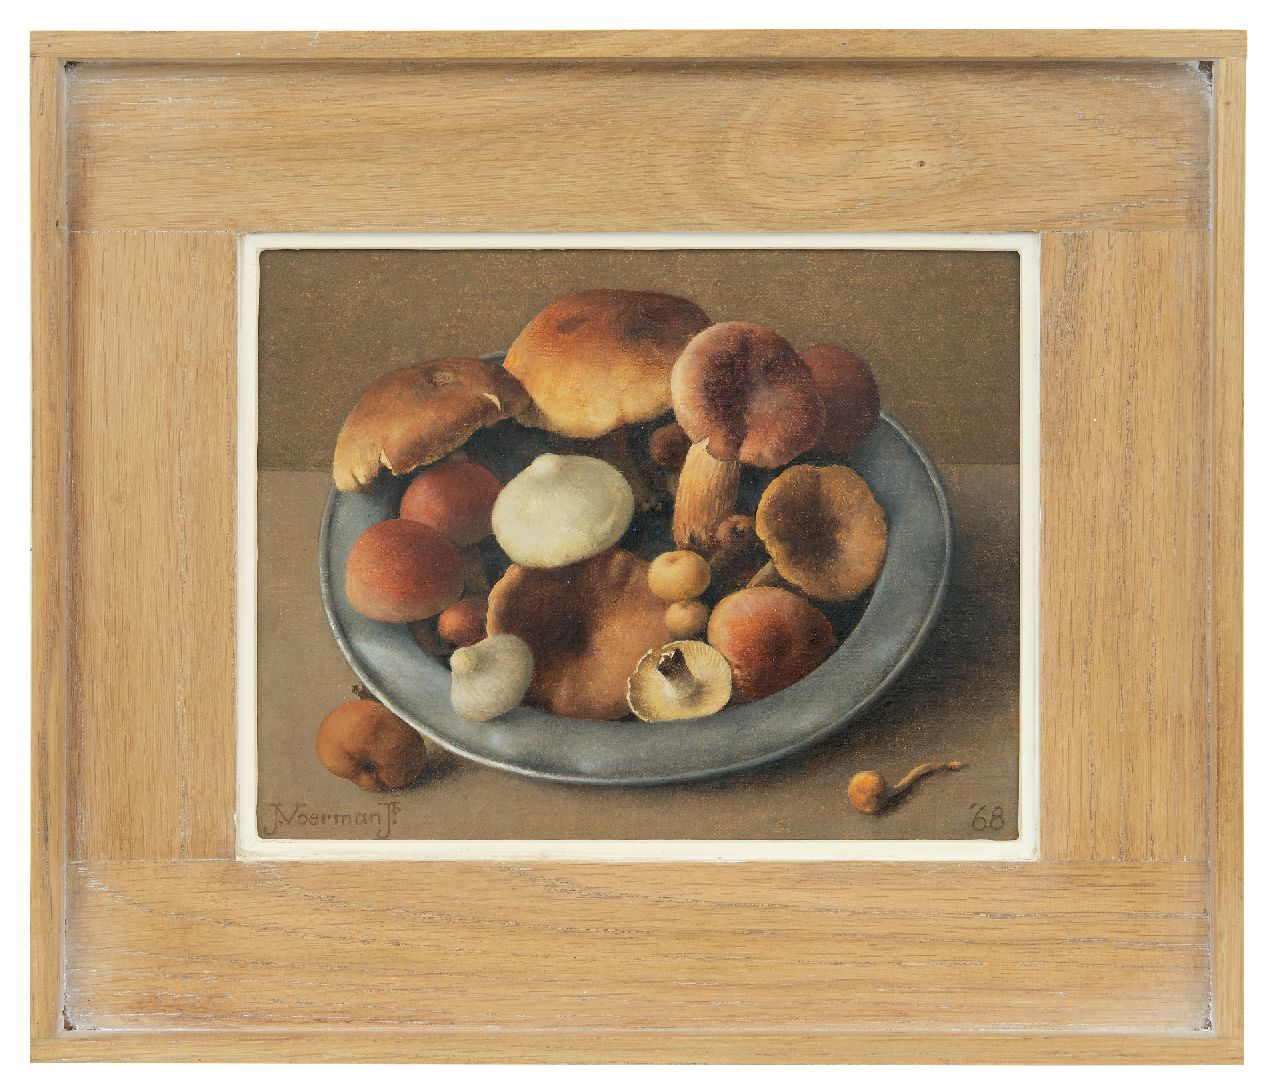 Voerman jr. J.  | Jan Voerman jr. | Paintings offered for sale | A pewter bowl with mushrooms, oil on canvas laid down on board 19.2 x 24.4 cm, signed l.l. and dated '68